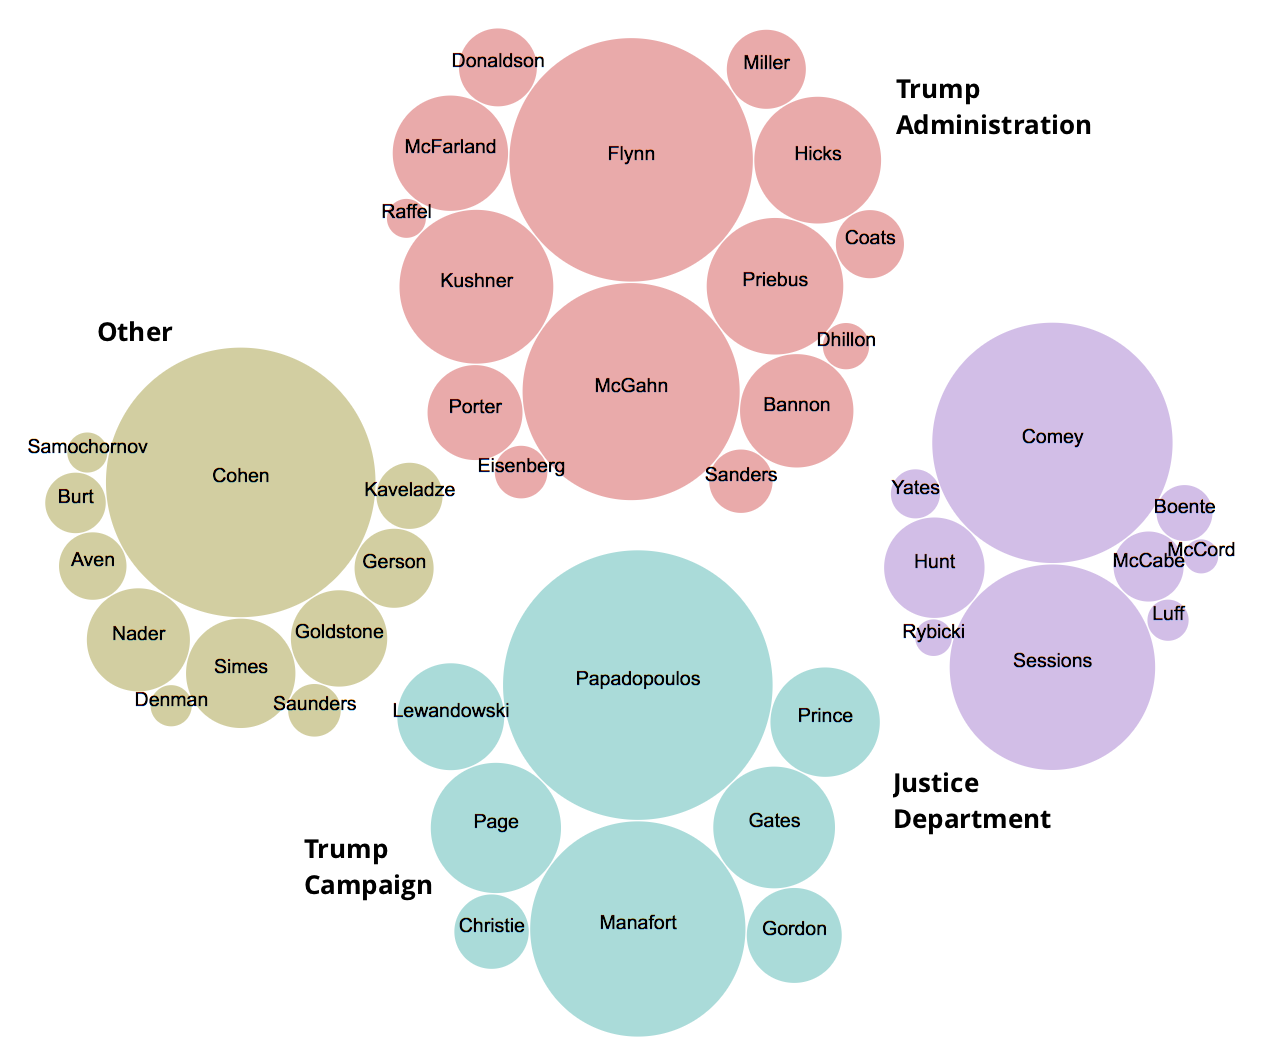 How To Build A Bubble Chart Of Individuals Mentioned In